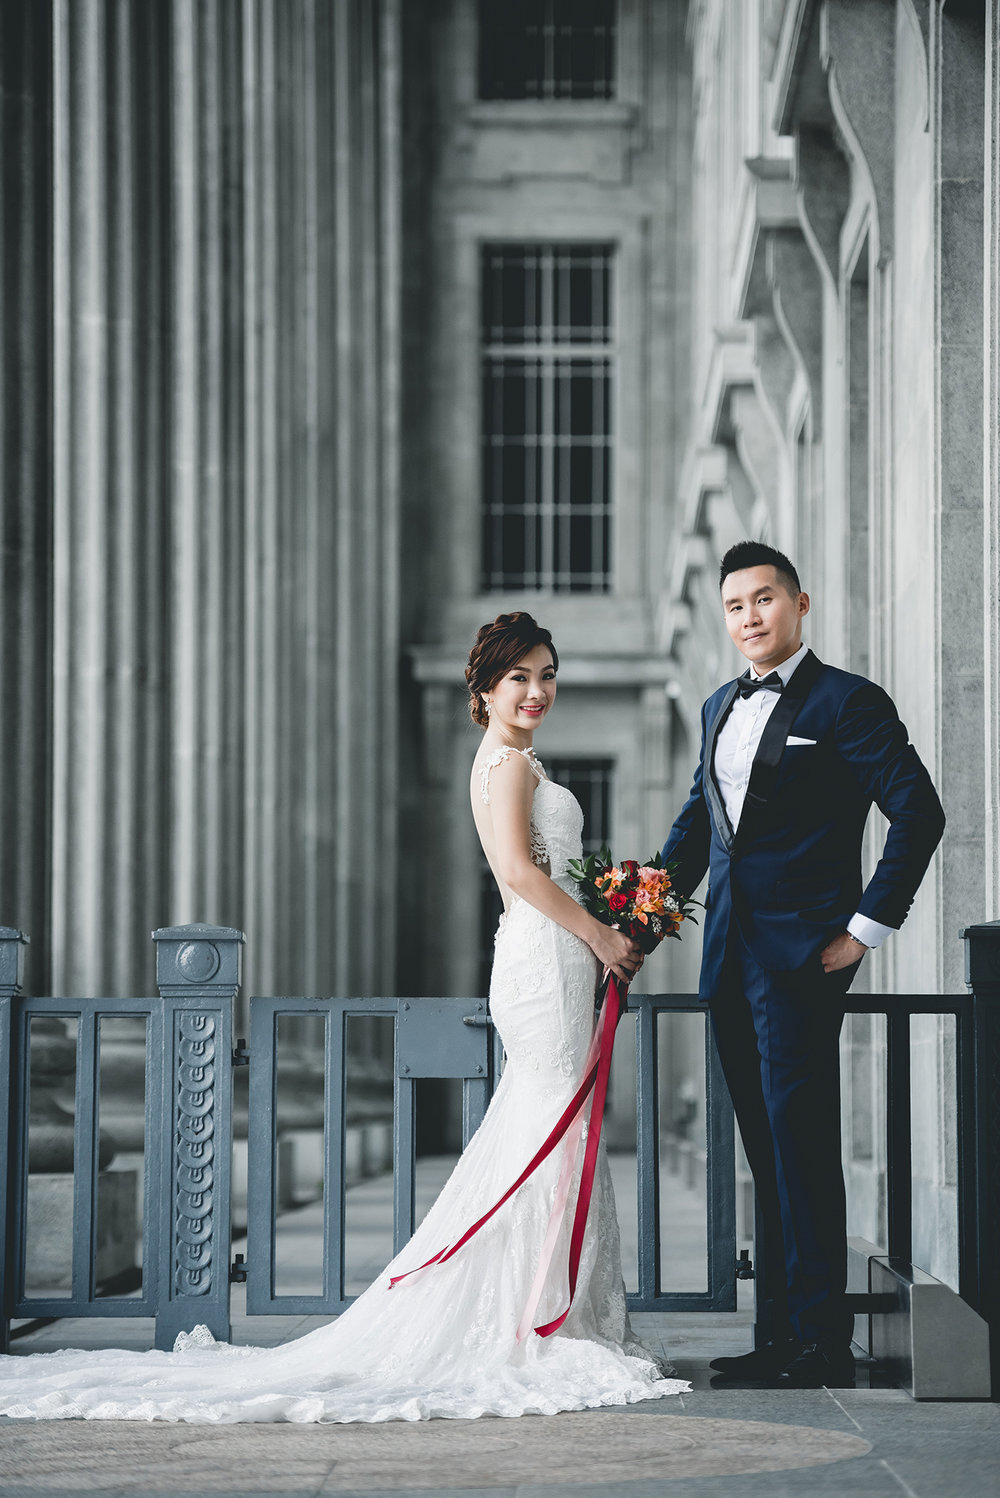 Singapore Prewedding 38.JPG